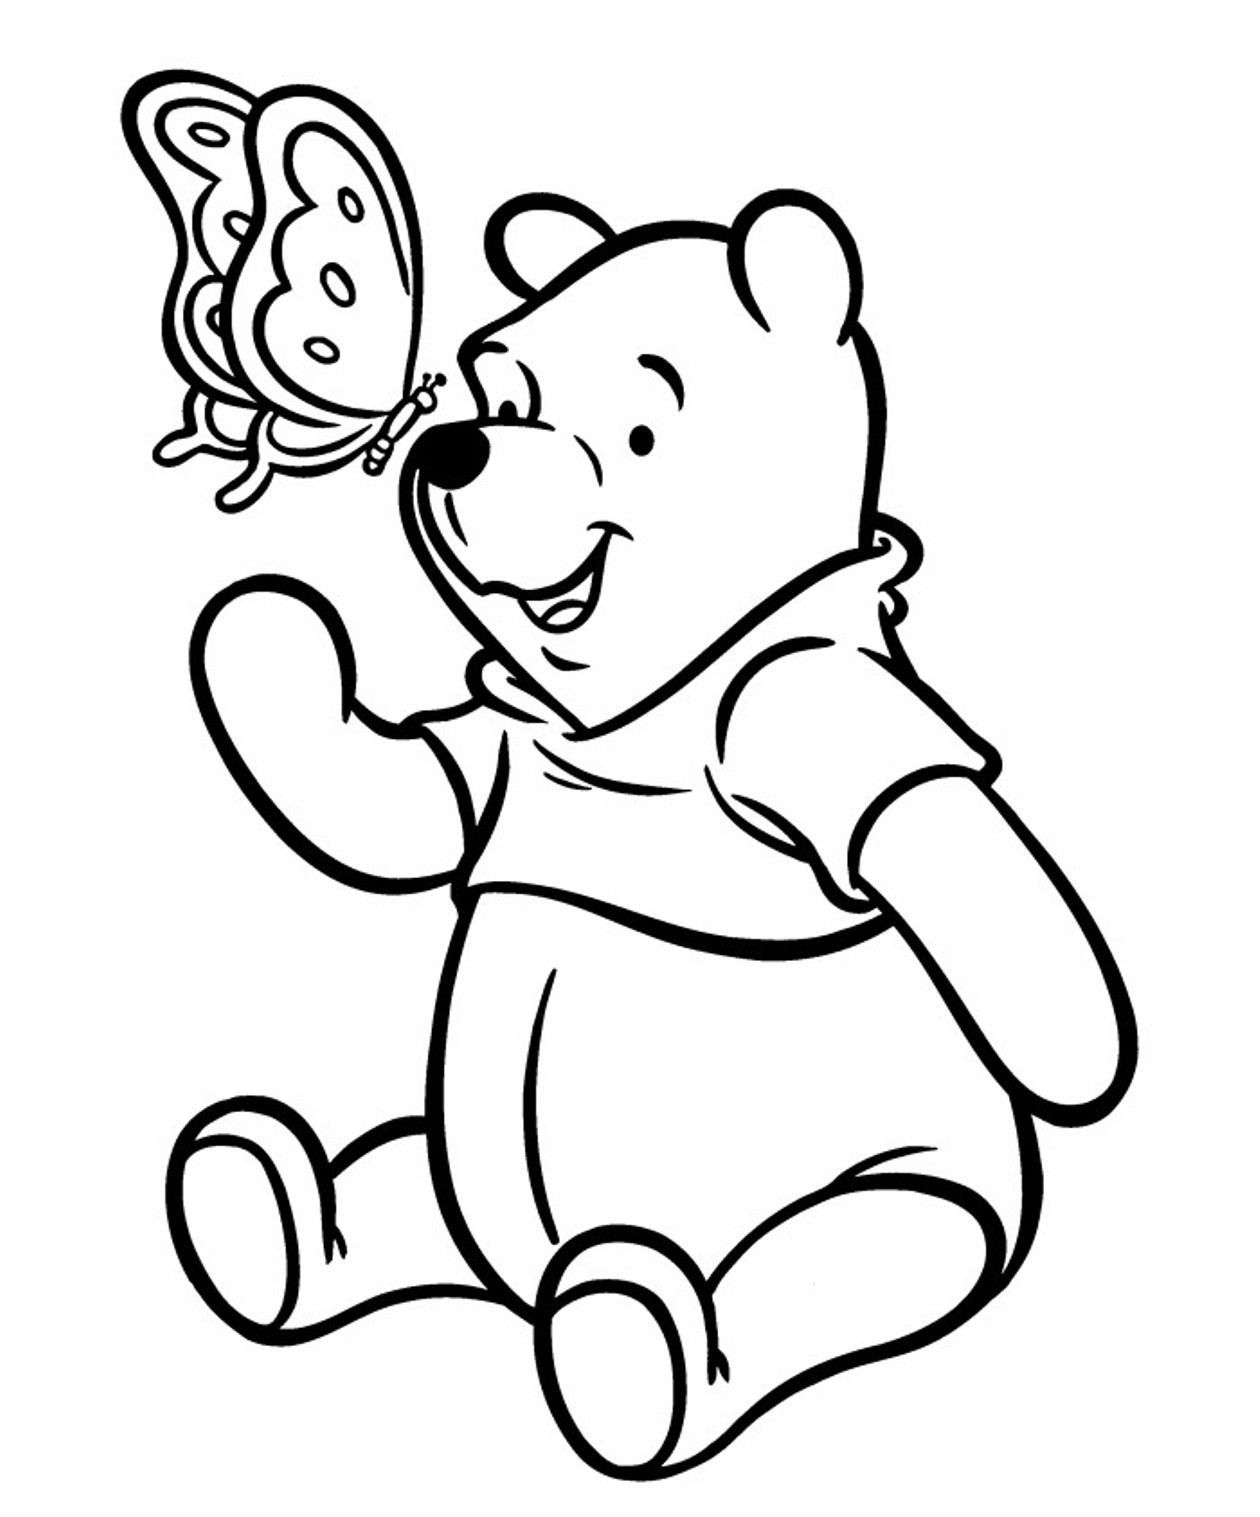 Pooh Bear Coloring Pages Coloring Pages Bear Coloring Pages